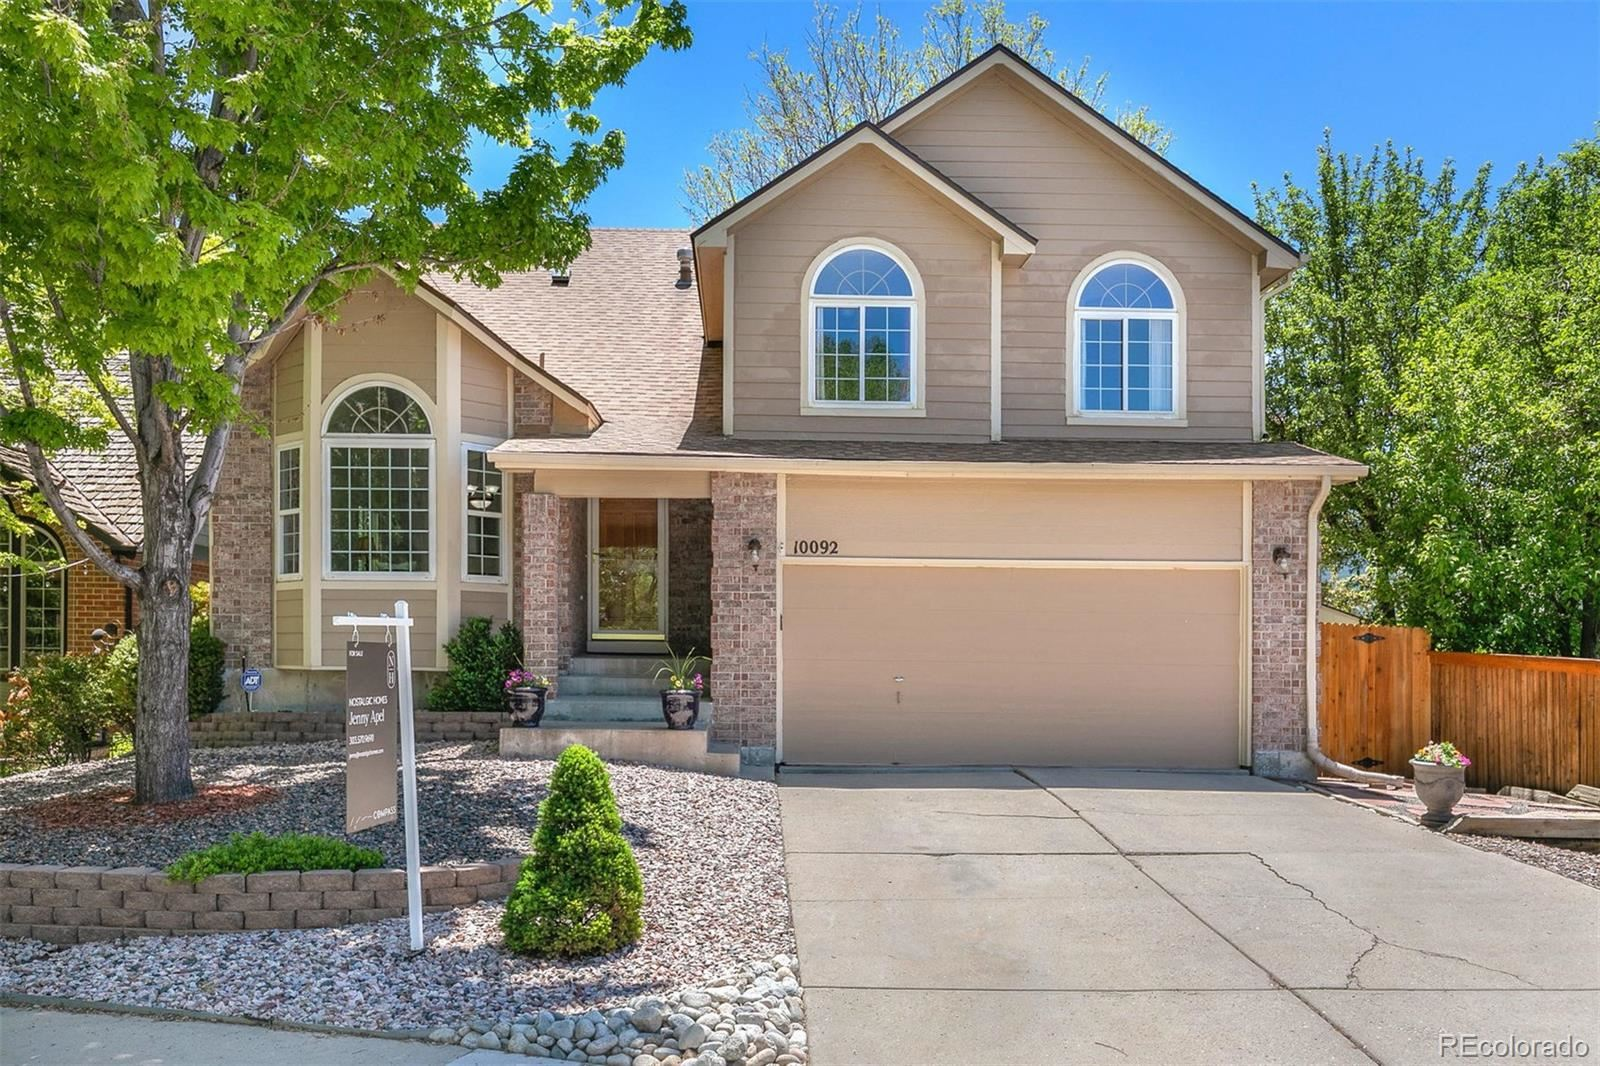 10092 W 81st Drive, Arvada, CO 80005 - #: 8965958